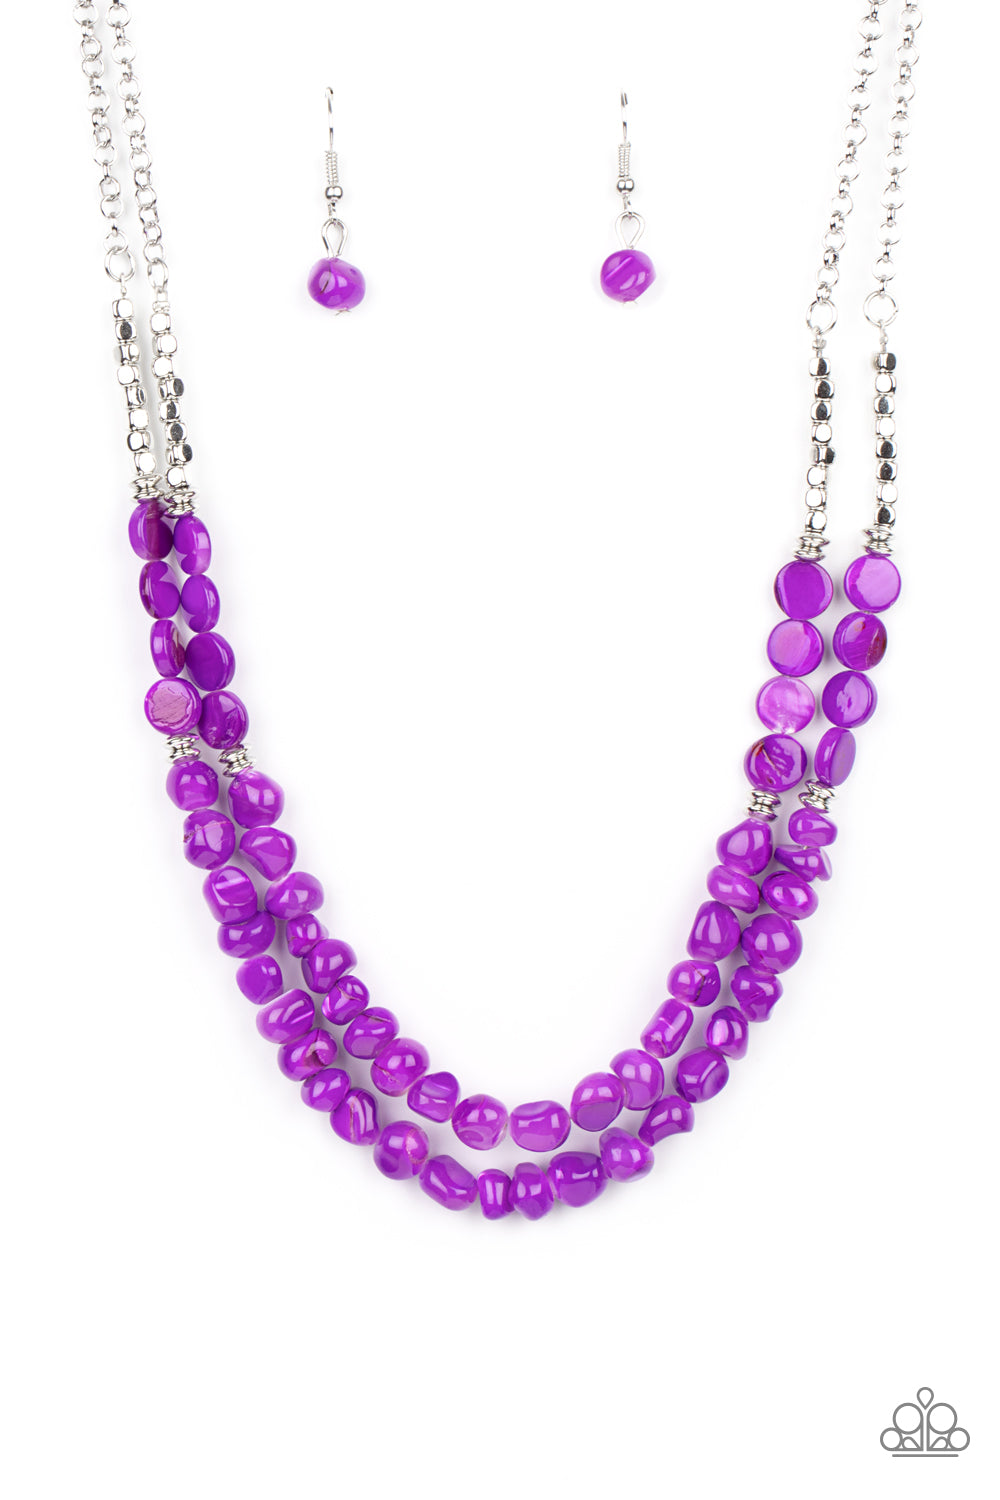 five-dollar-jewelry-staycation-status-purple-necklace-paparazzi-accessories